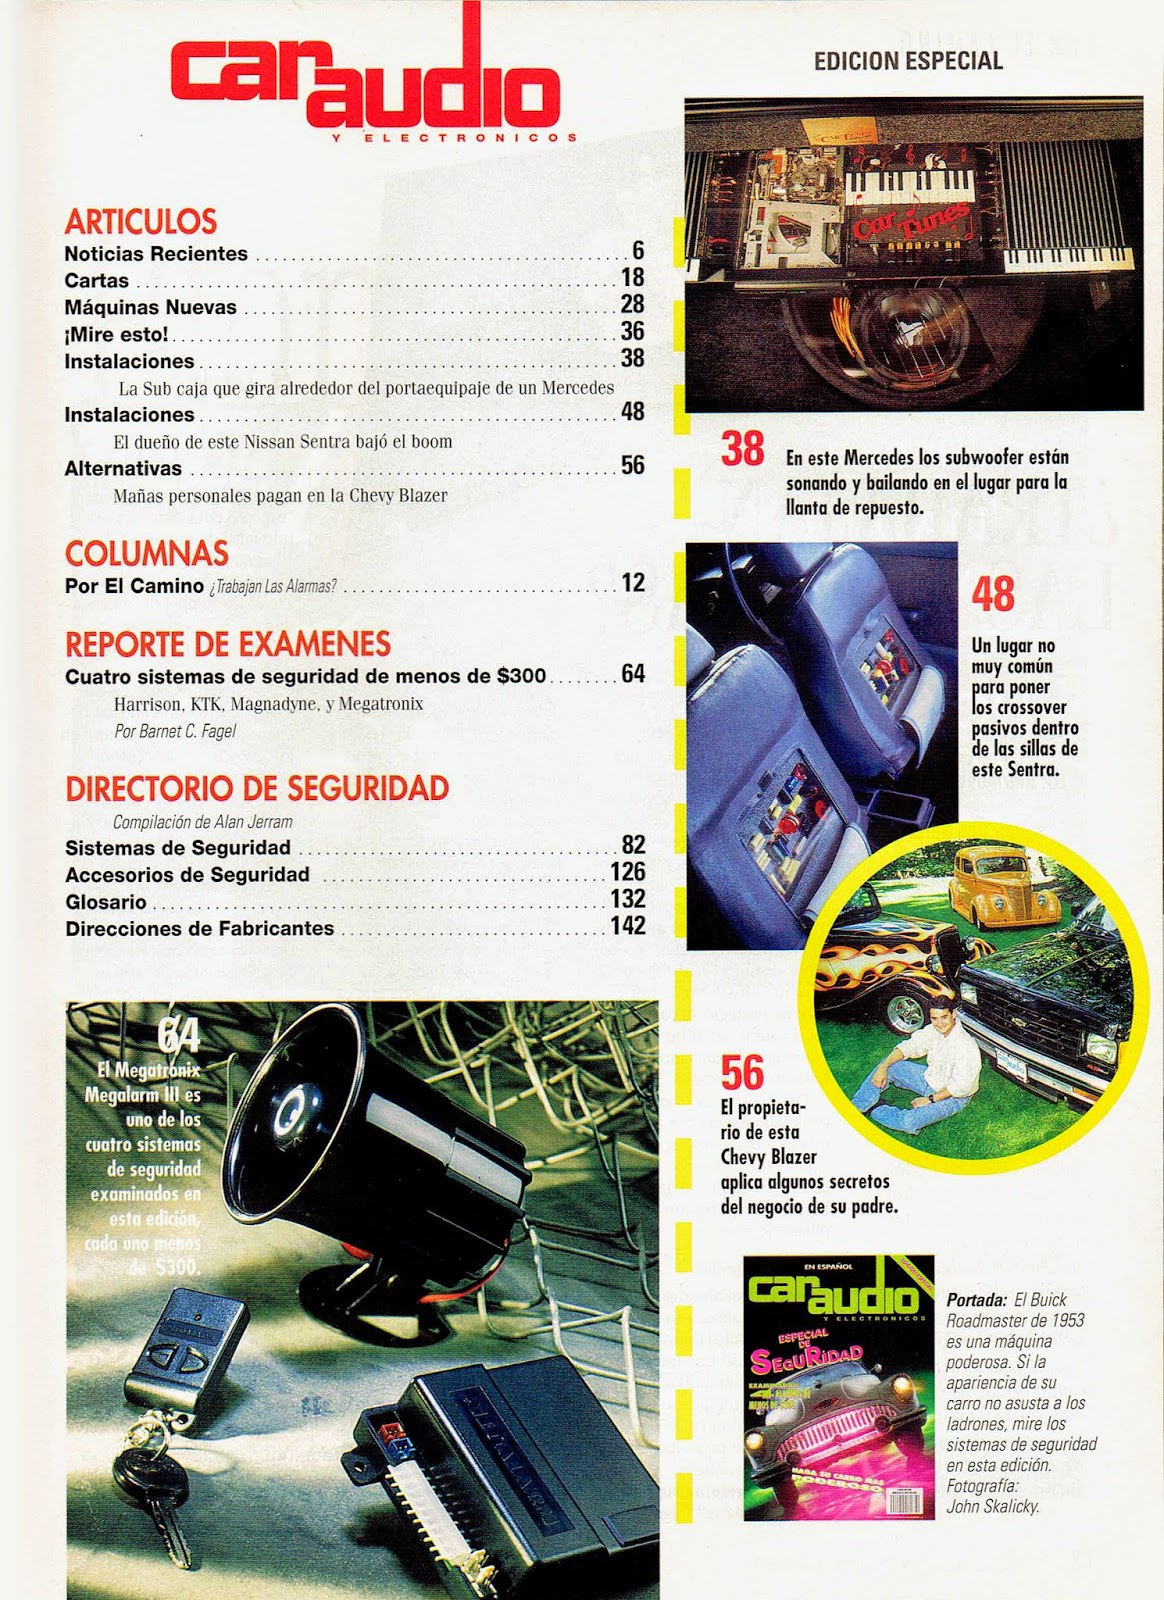 Image of Index of Car Audio & Electronics Magazine Special Edition in Spanish